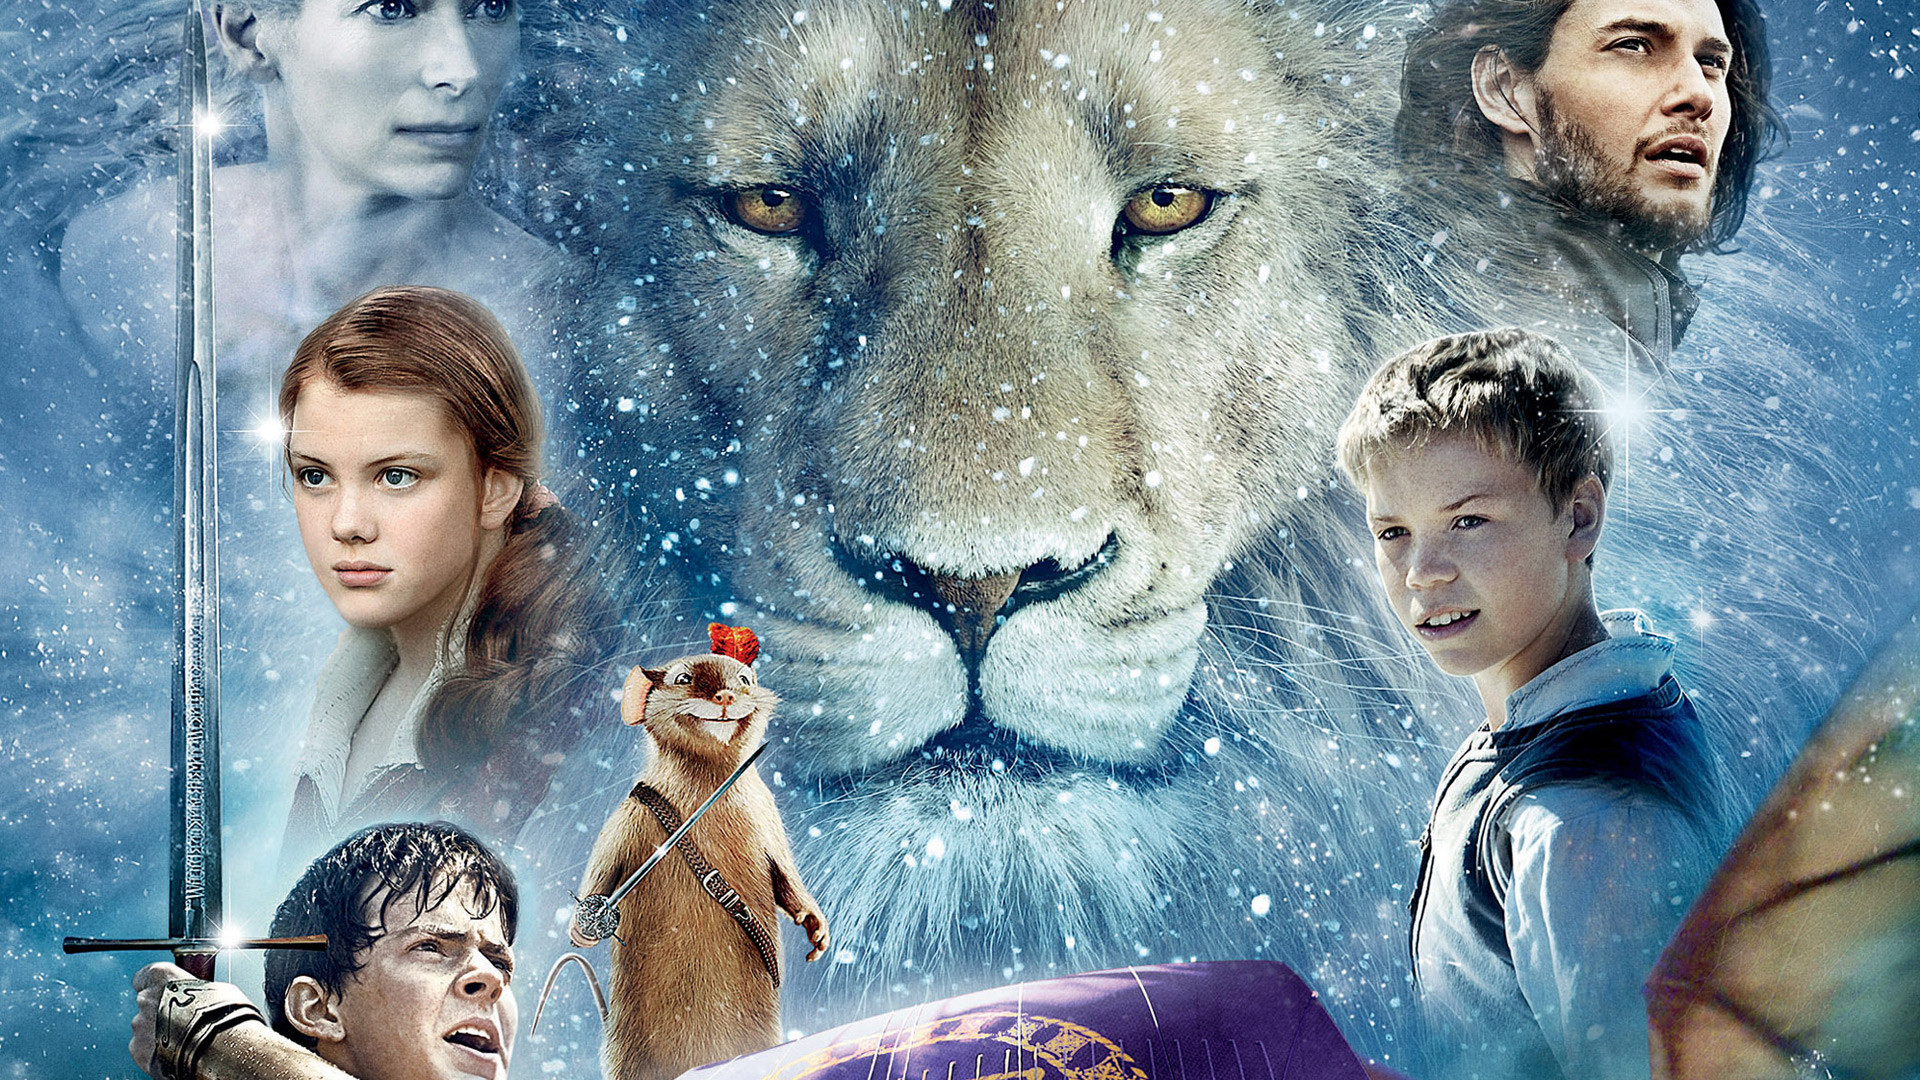 1920x1080 - The Chronicles of Narnia: The Voyage of the Dawn Treader Wallpapers 6